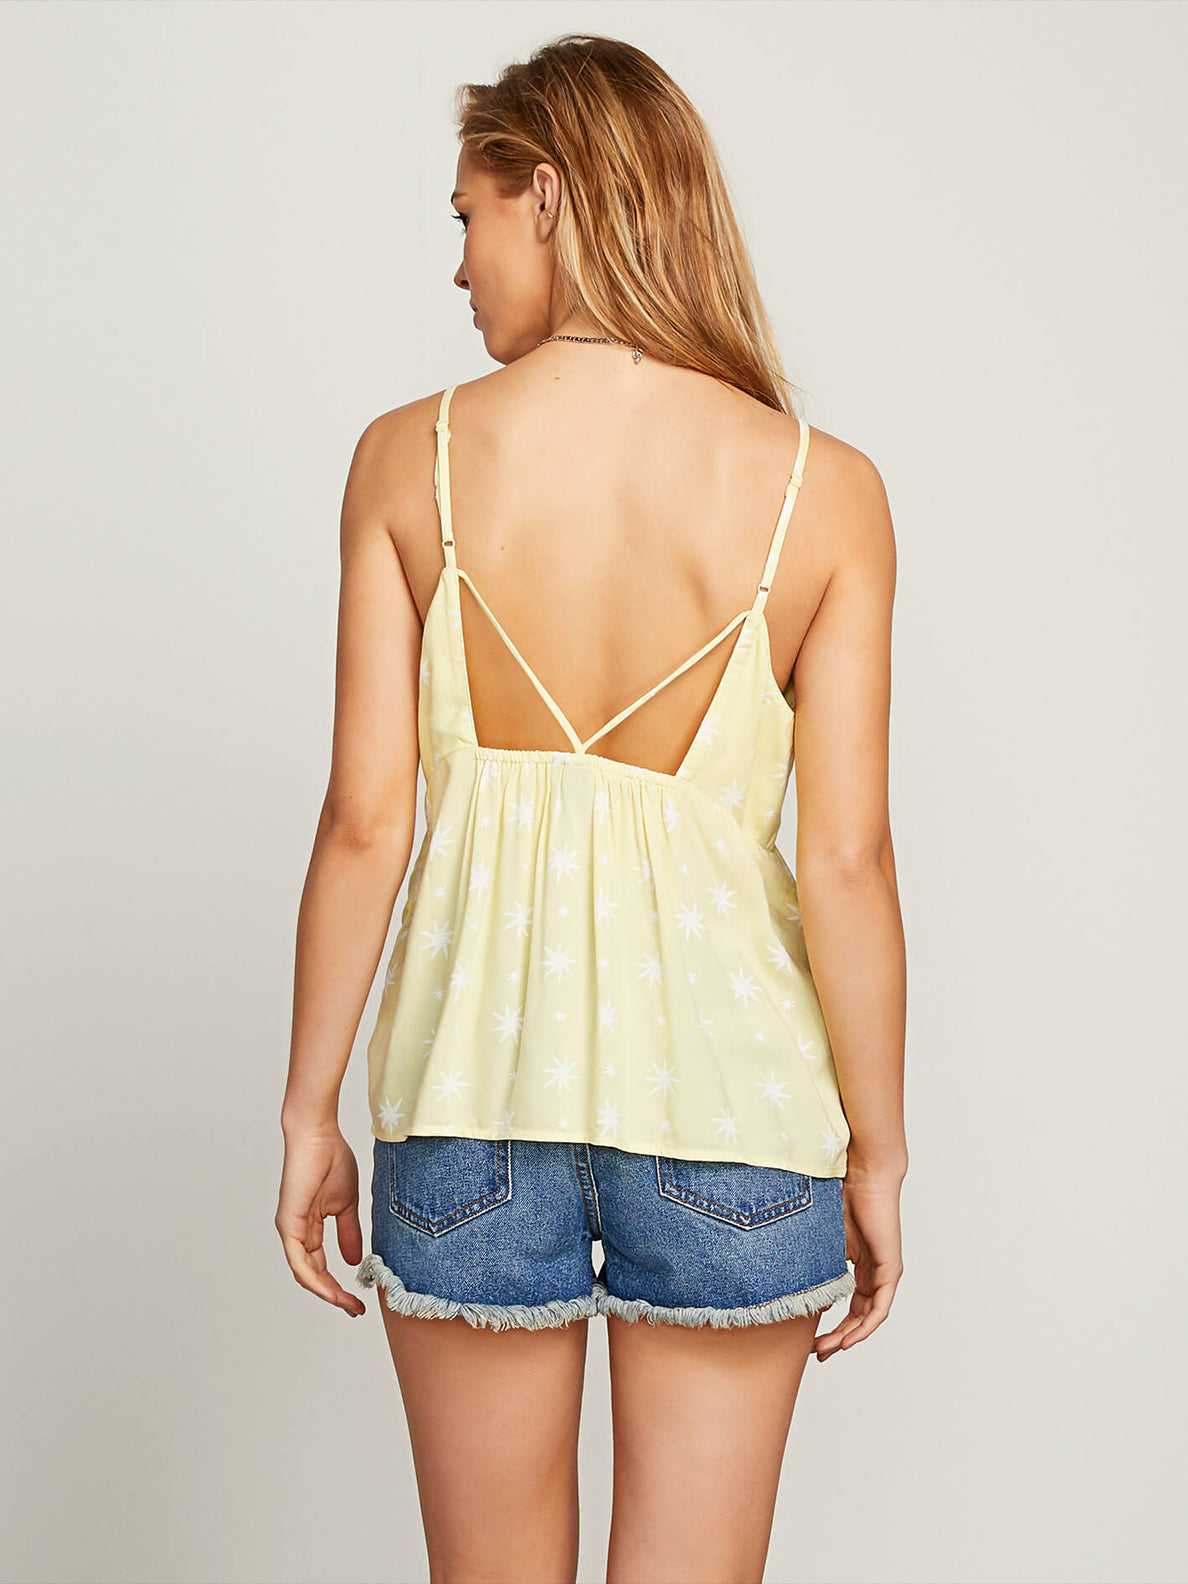 Things Change Cami In Faded Yellow, Back View